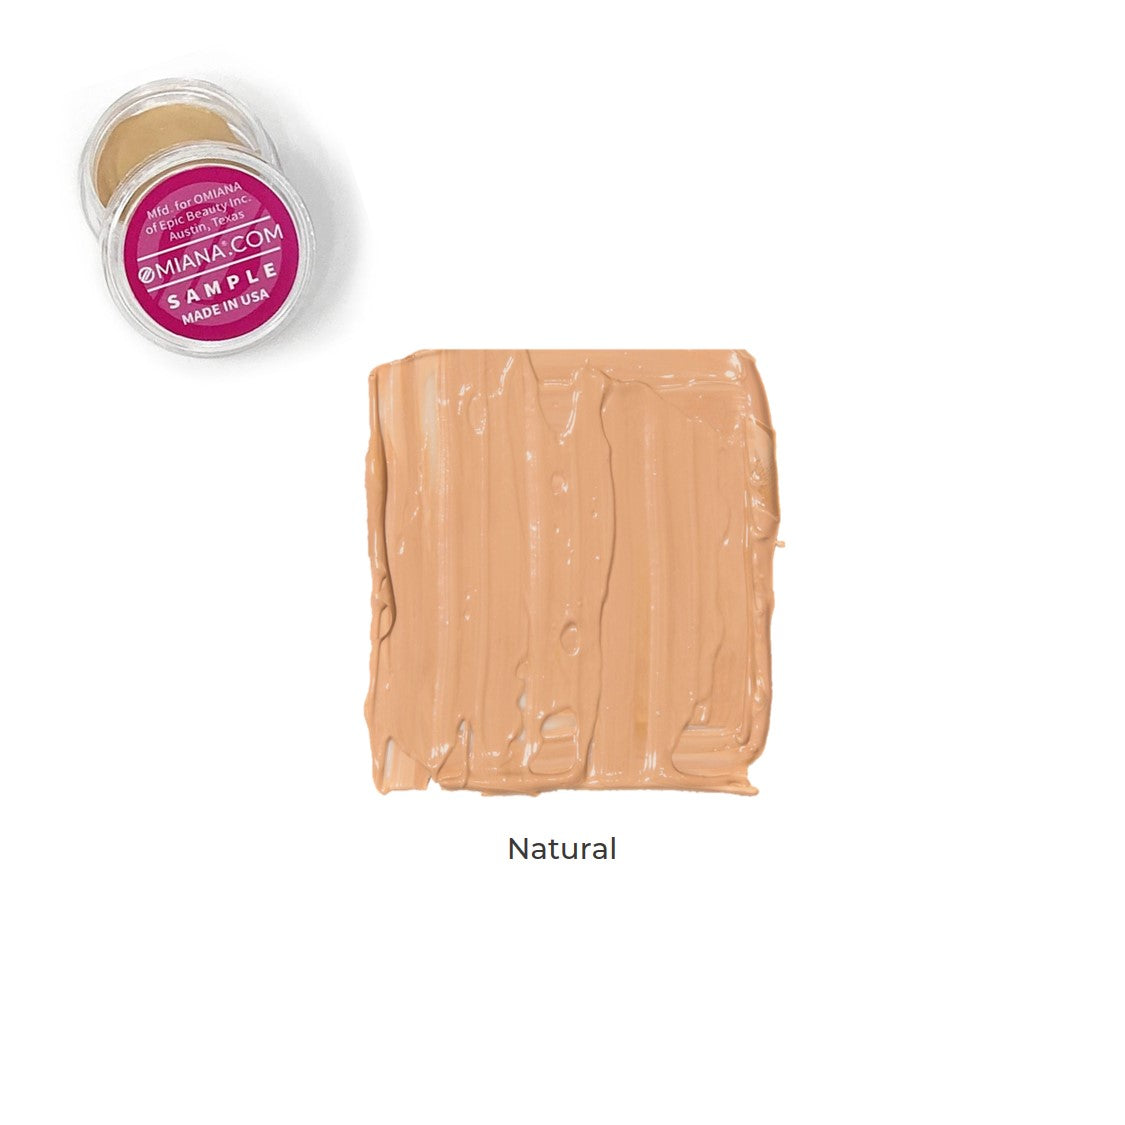 Velvet Matte Liquid Foundation Sample - Natural